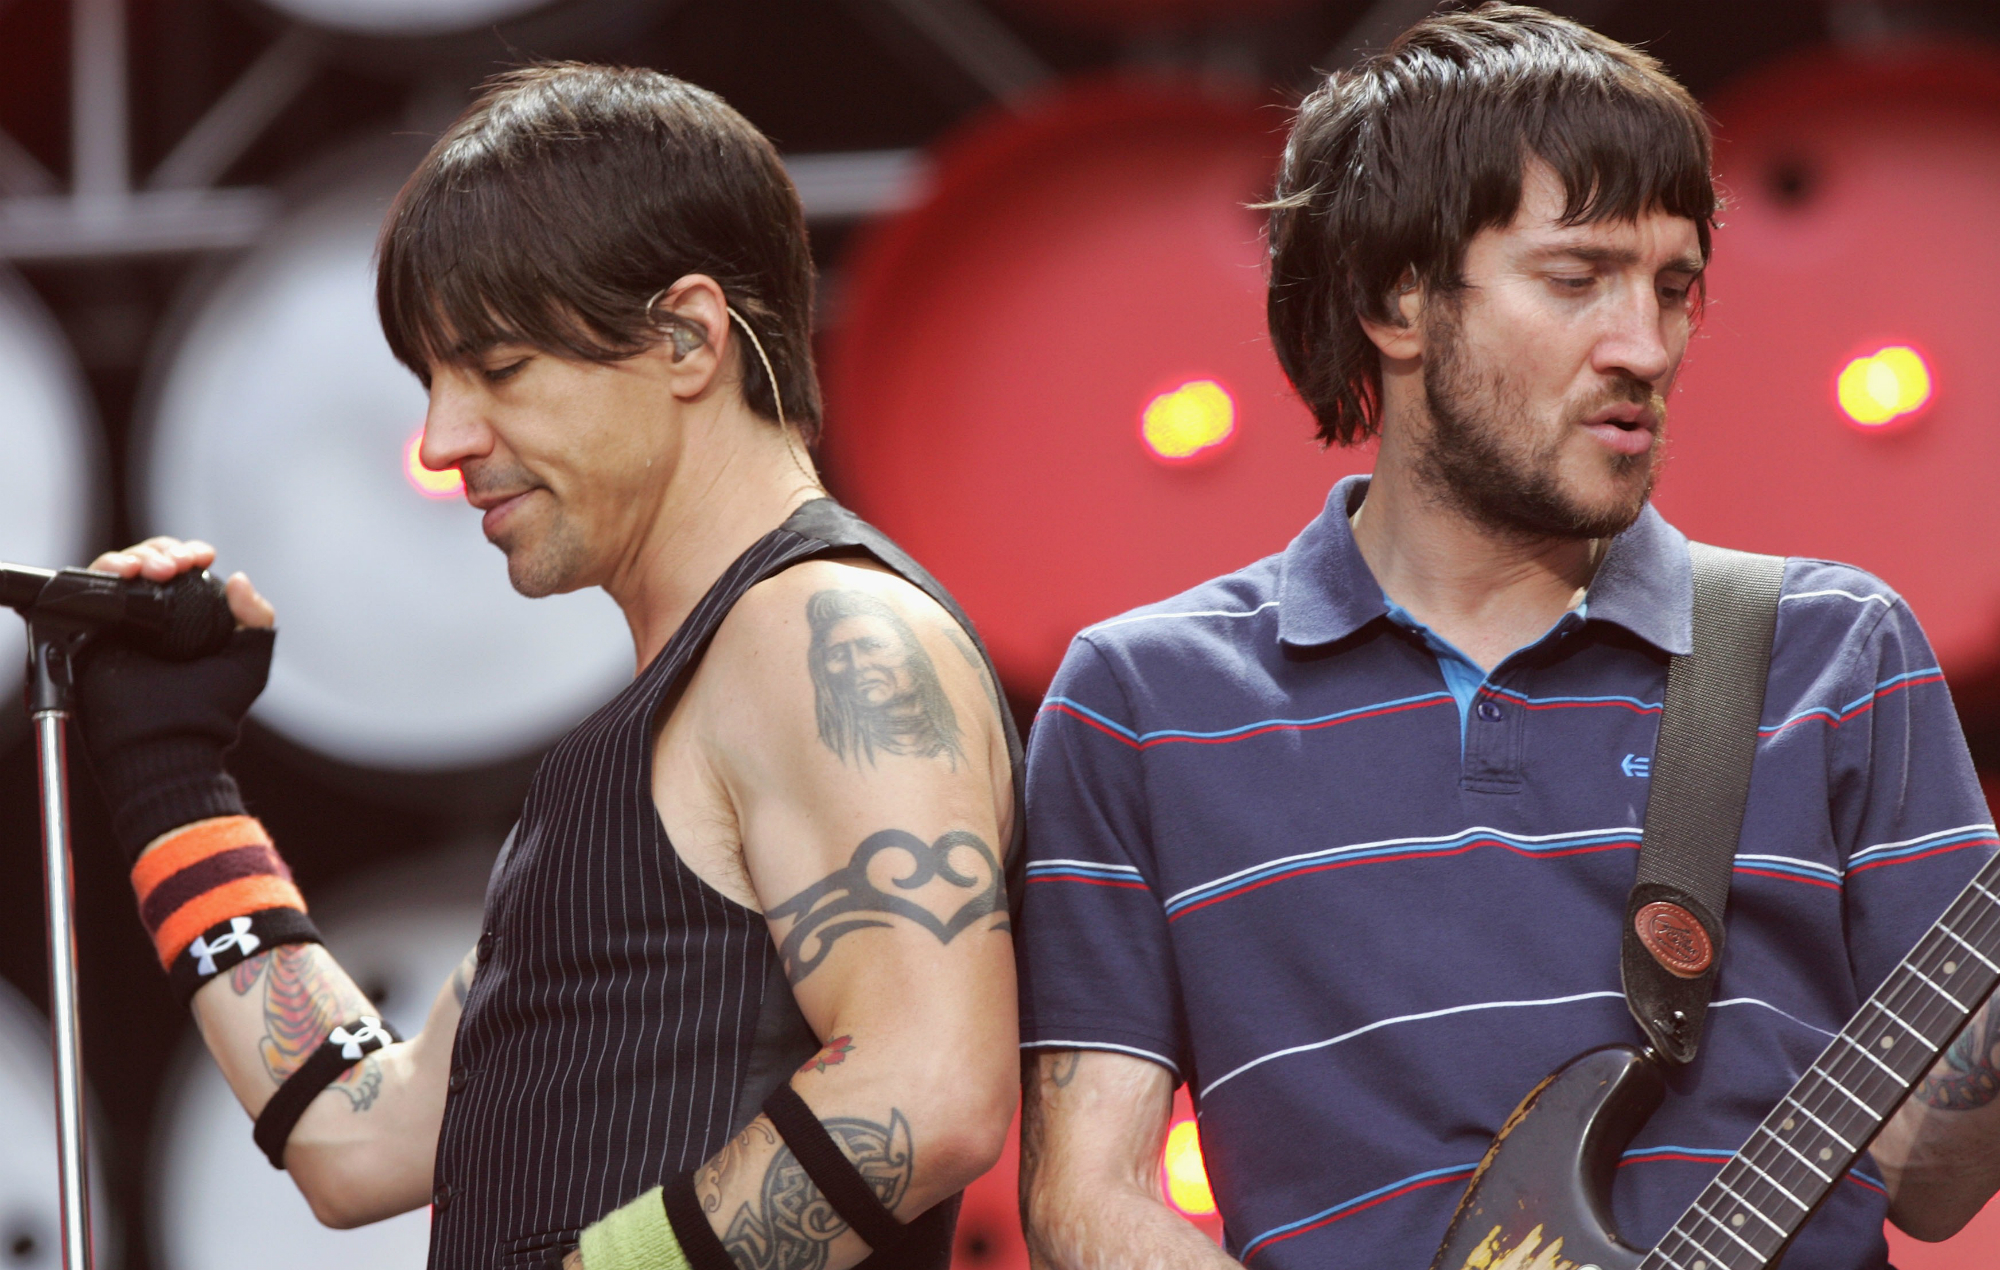 Red Hot Chili Peppers announce John Frusciante is rejoining band